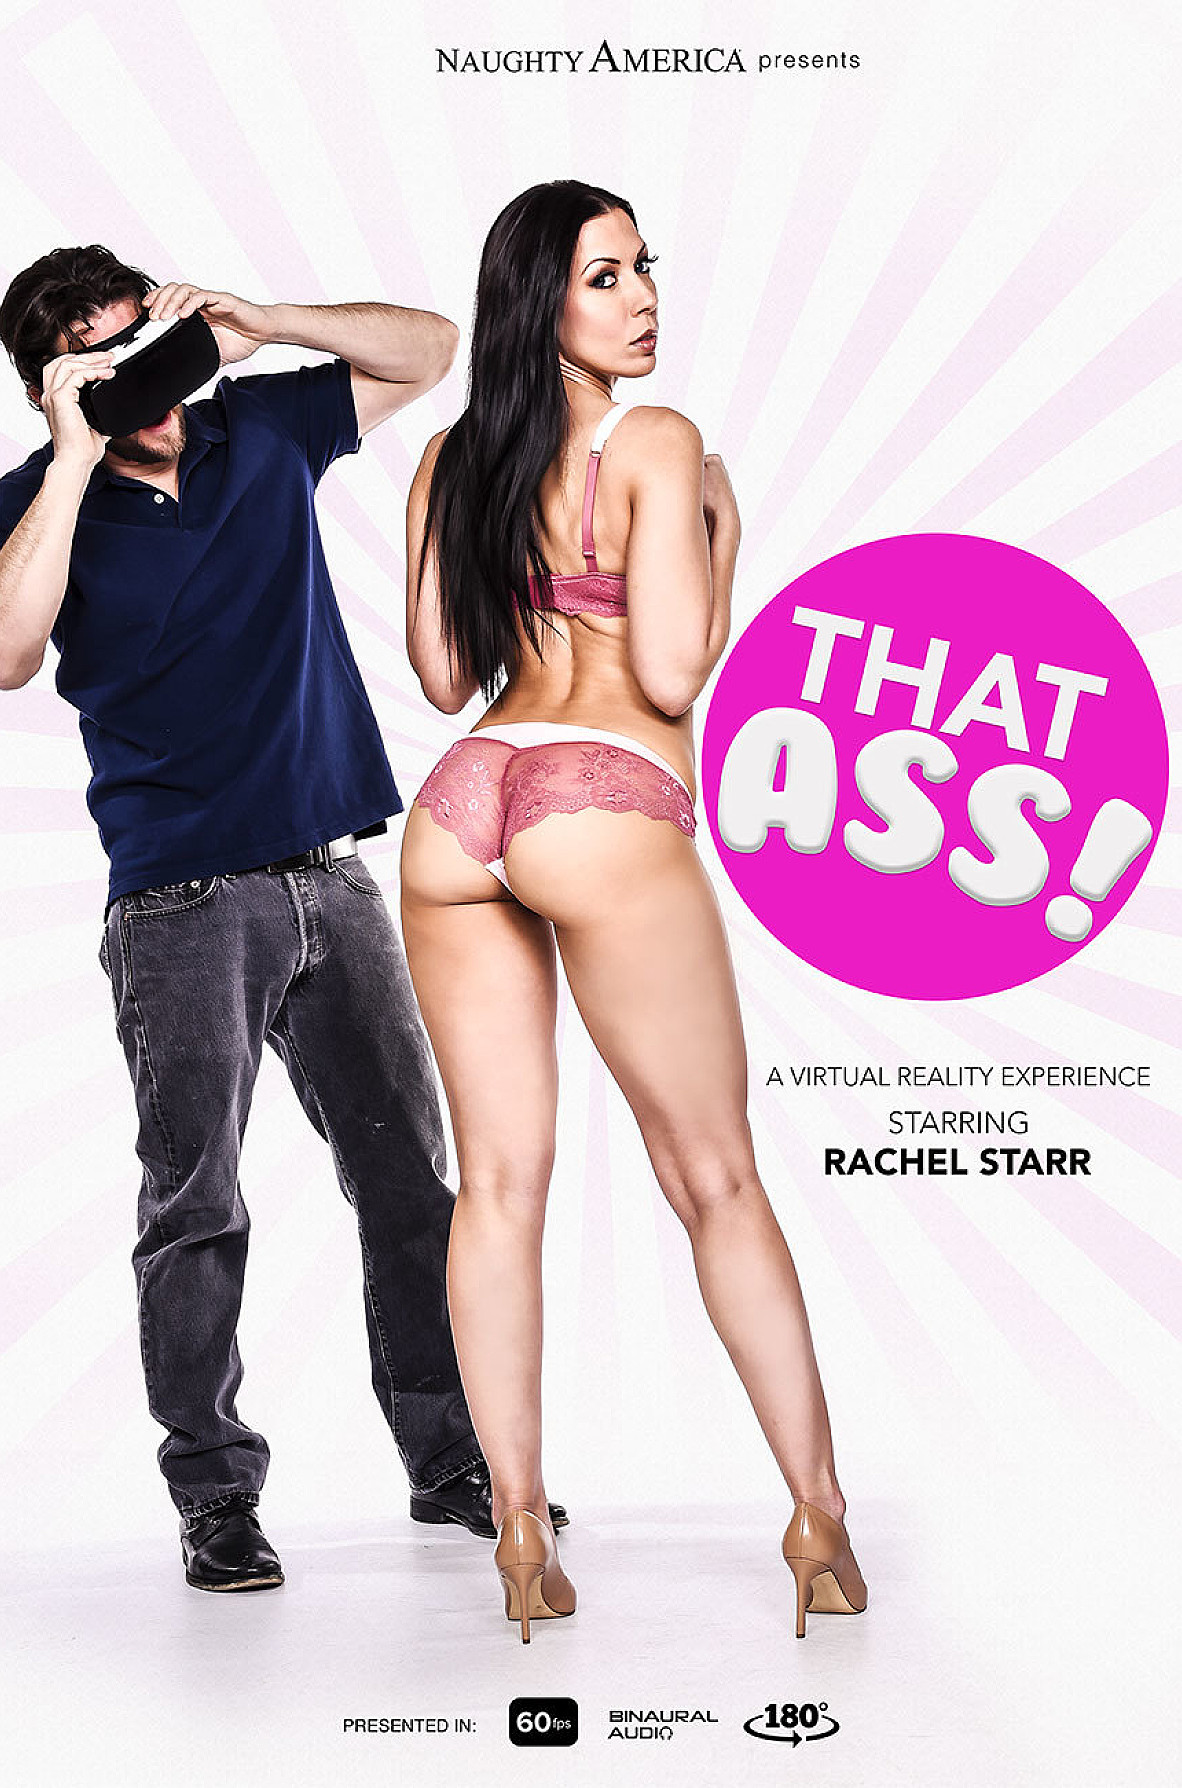 Watch Rachel Starr and Preston Parker VR video in Naughty America